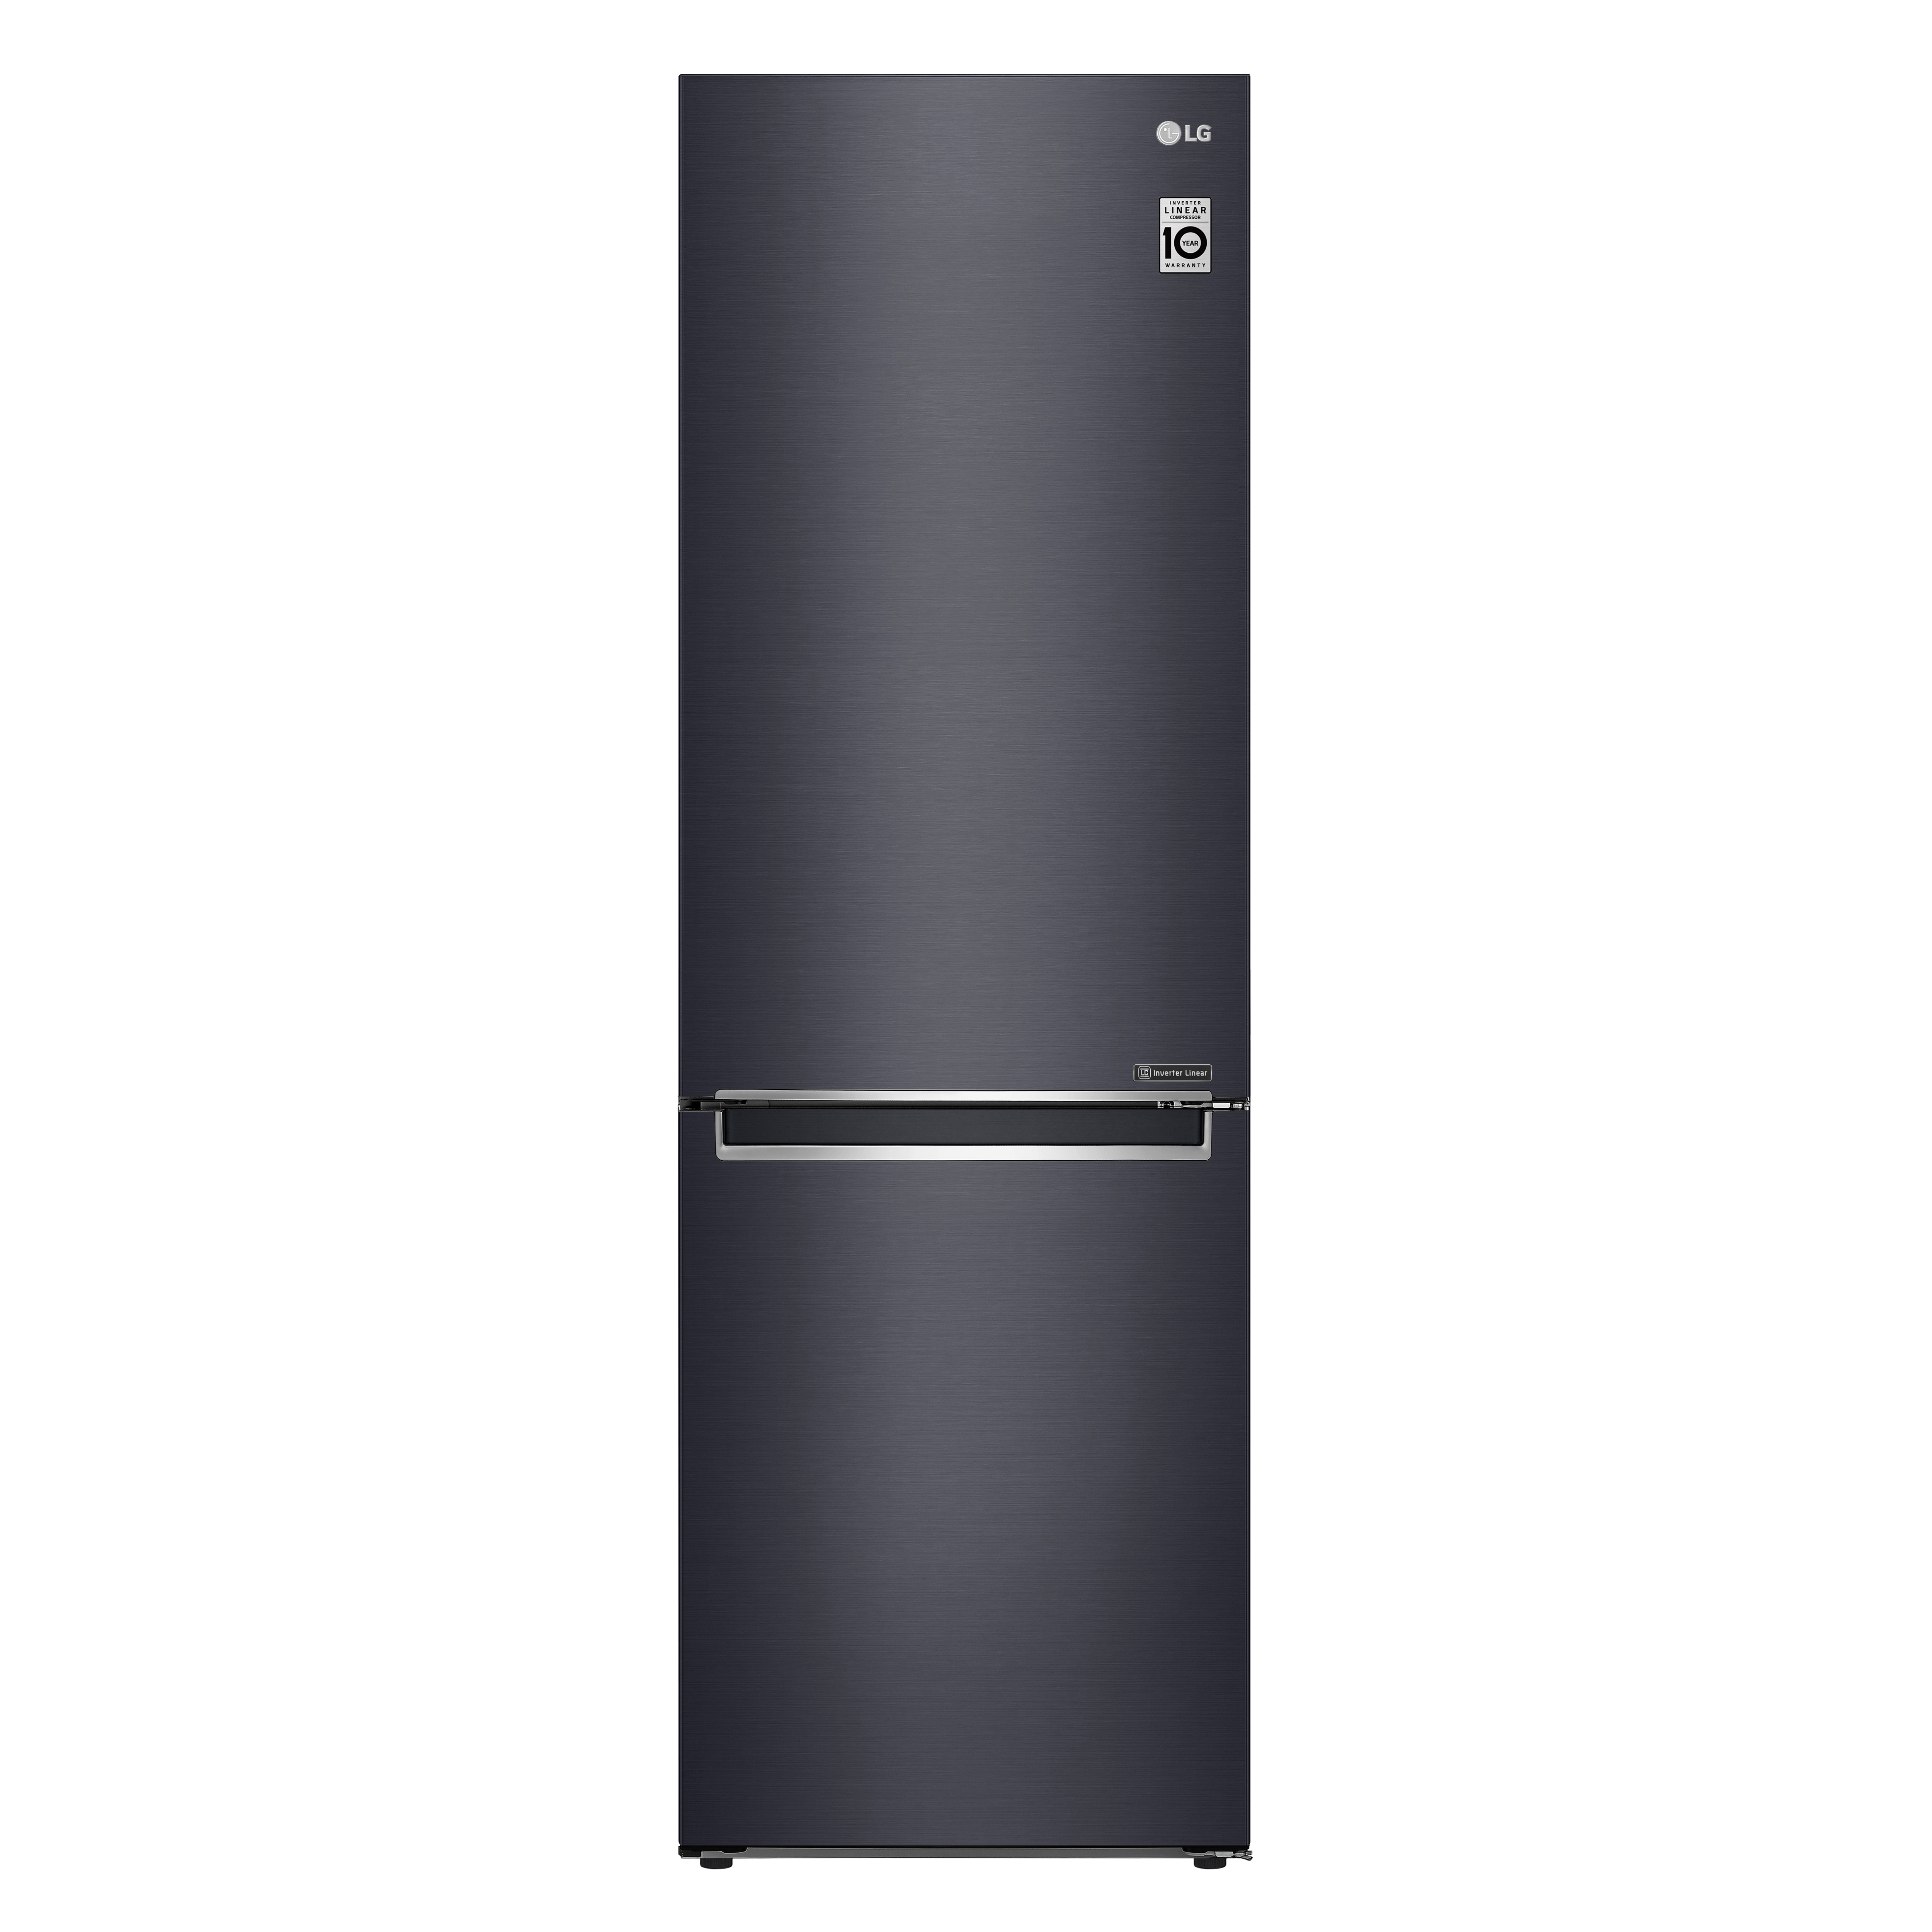 LG Refrigerator in Black color showcased by Corbeil Electro Store